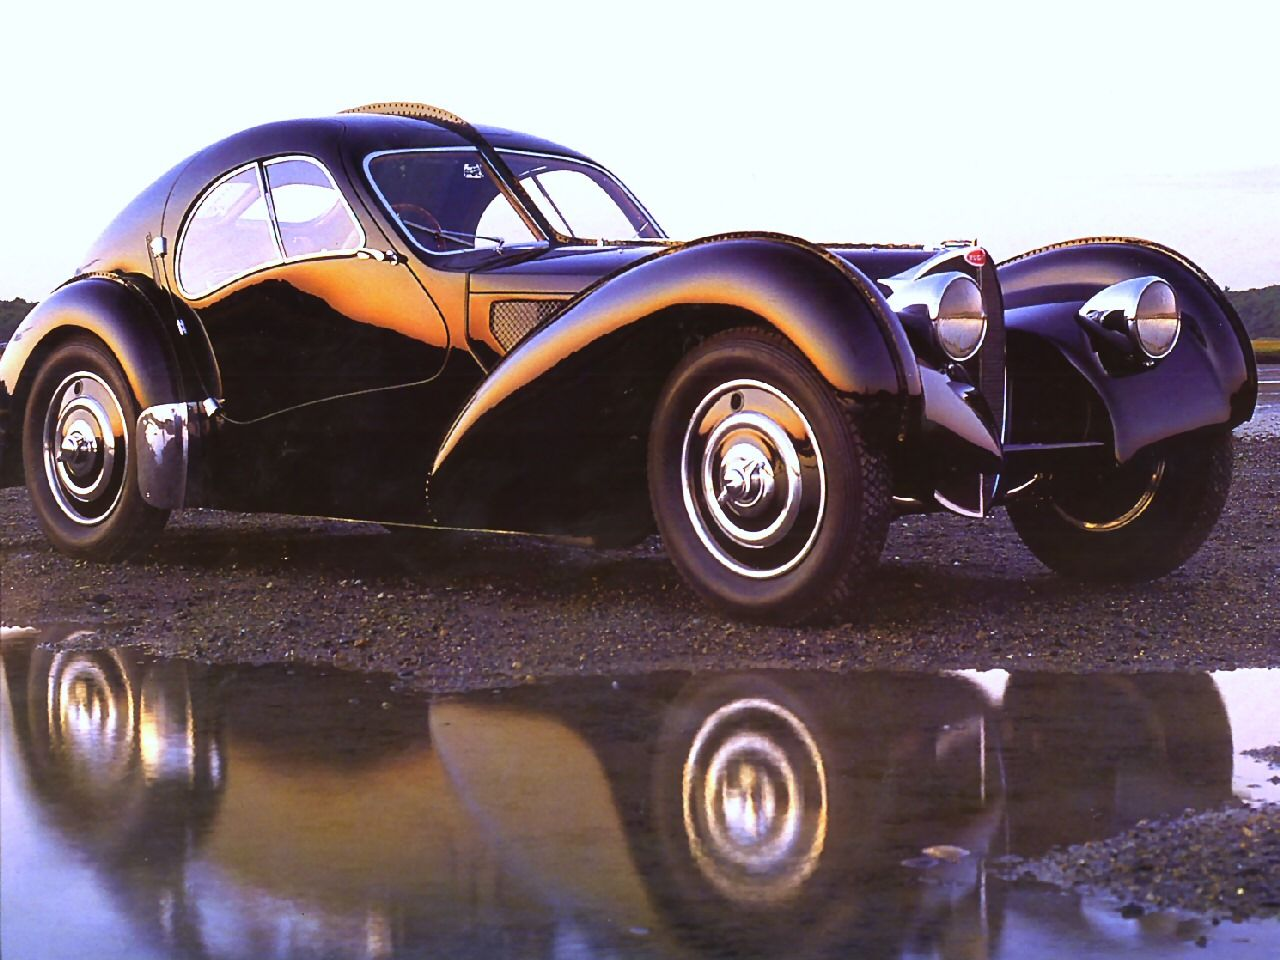 1937 bugatti type 57sc atlantic electron coupe black cars trailers bicycl. Cars Review. Best American Auto & Cars Review